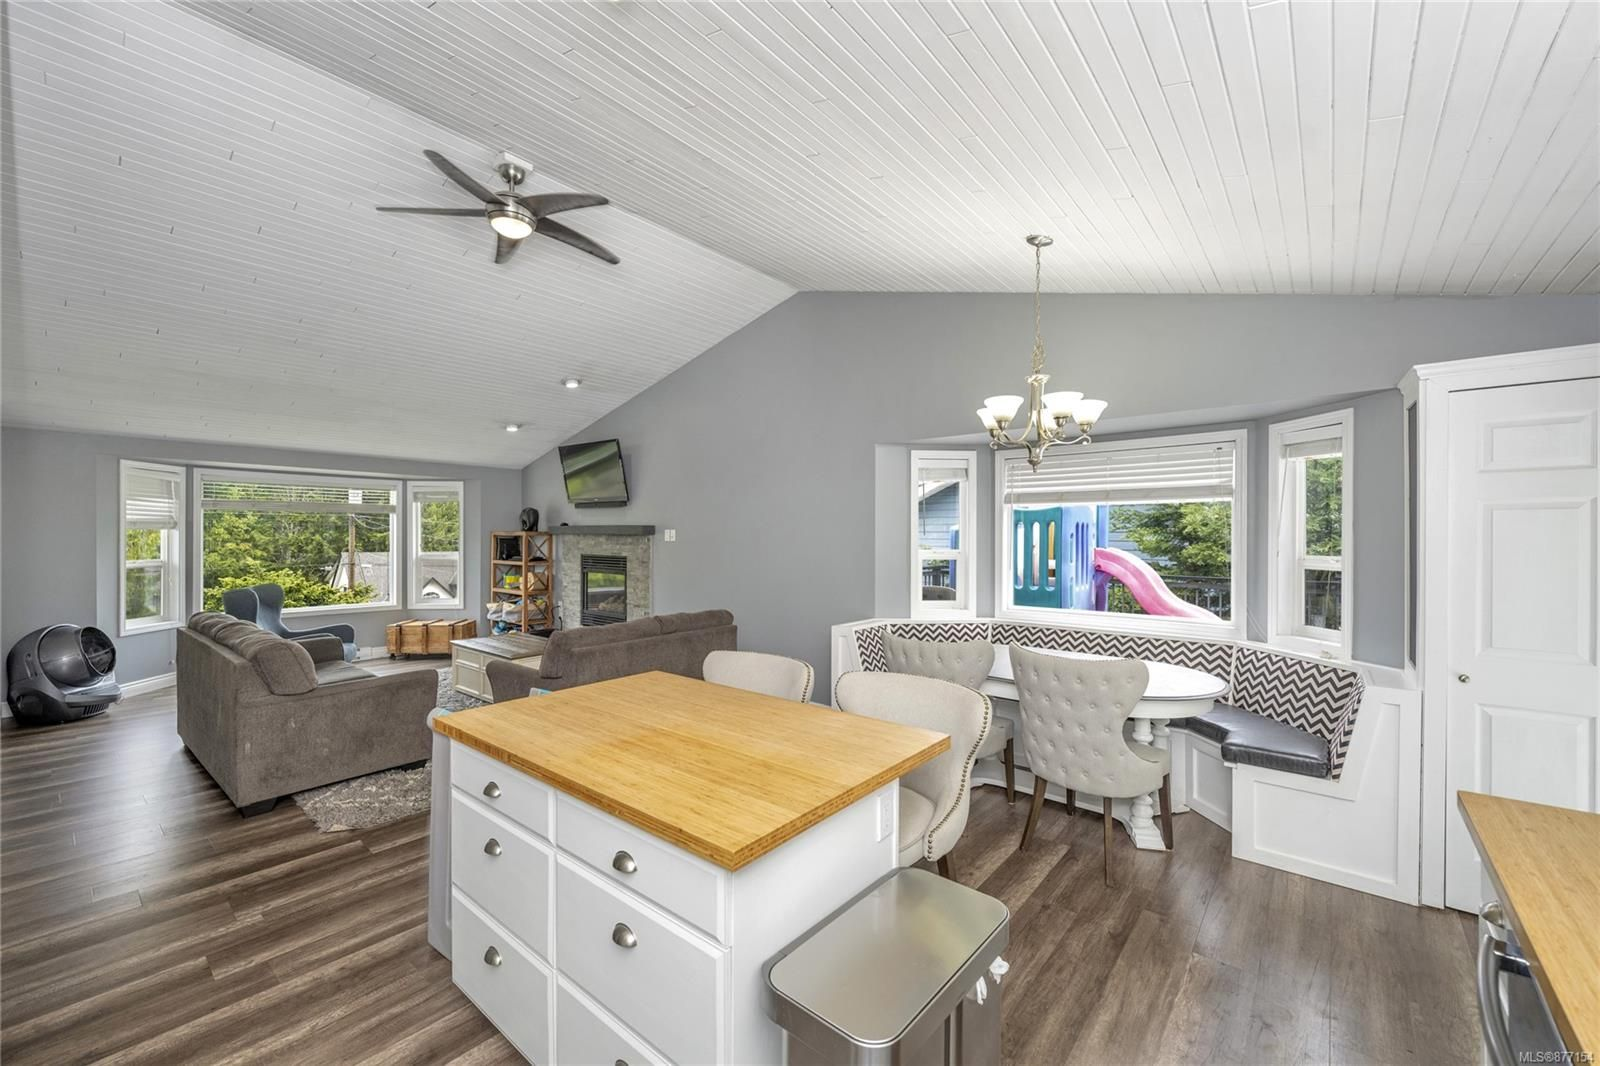 Photo 8: Photos: 2376 Terrace Rd in : ML Shawnigan House for sale (Malahat & Area)  : MLS®# 877154